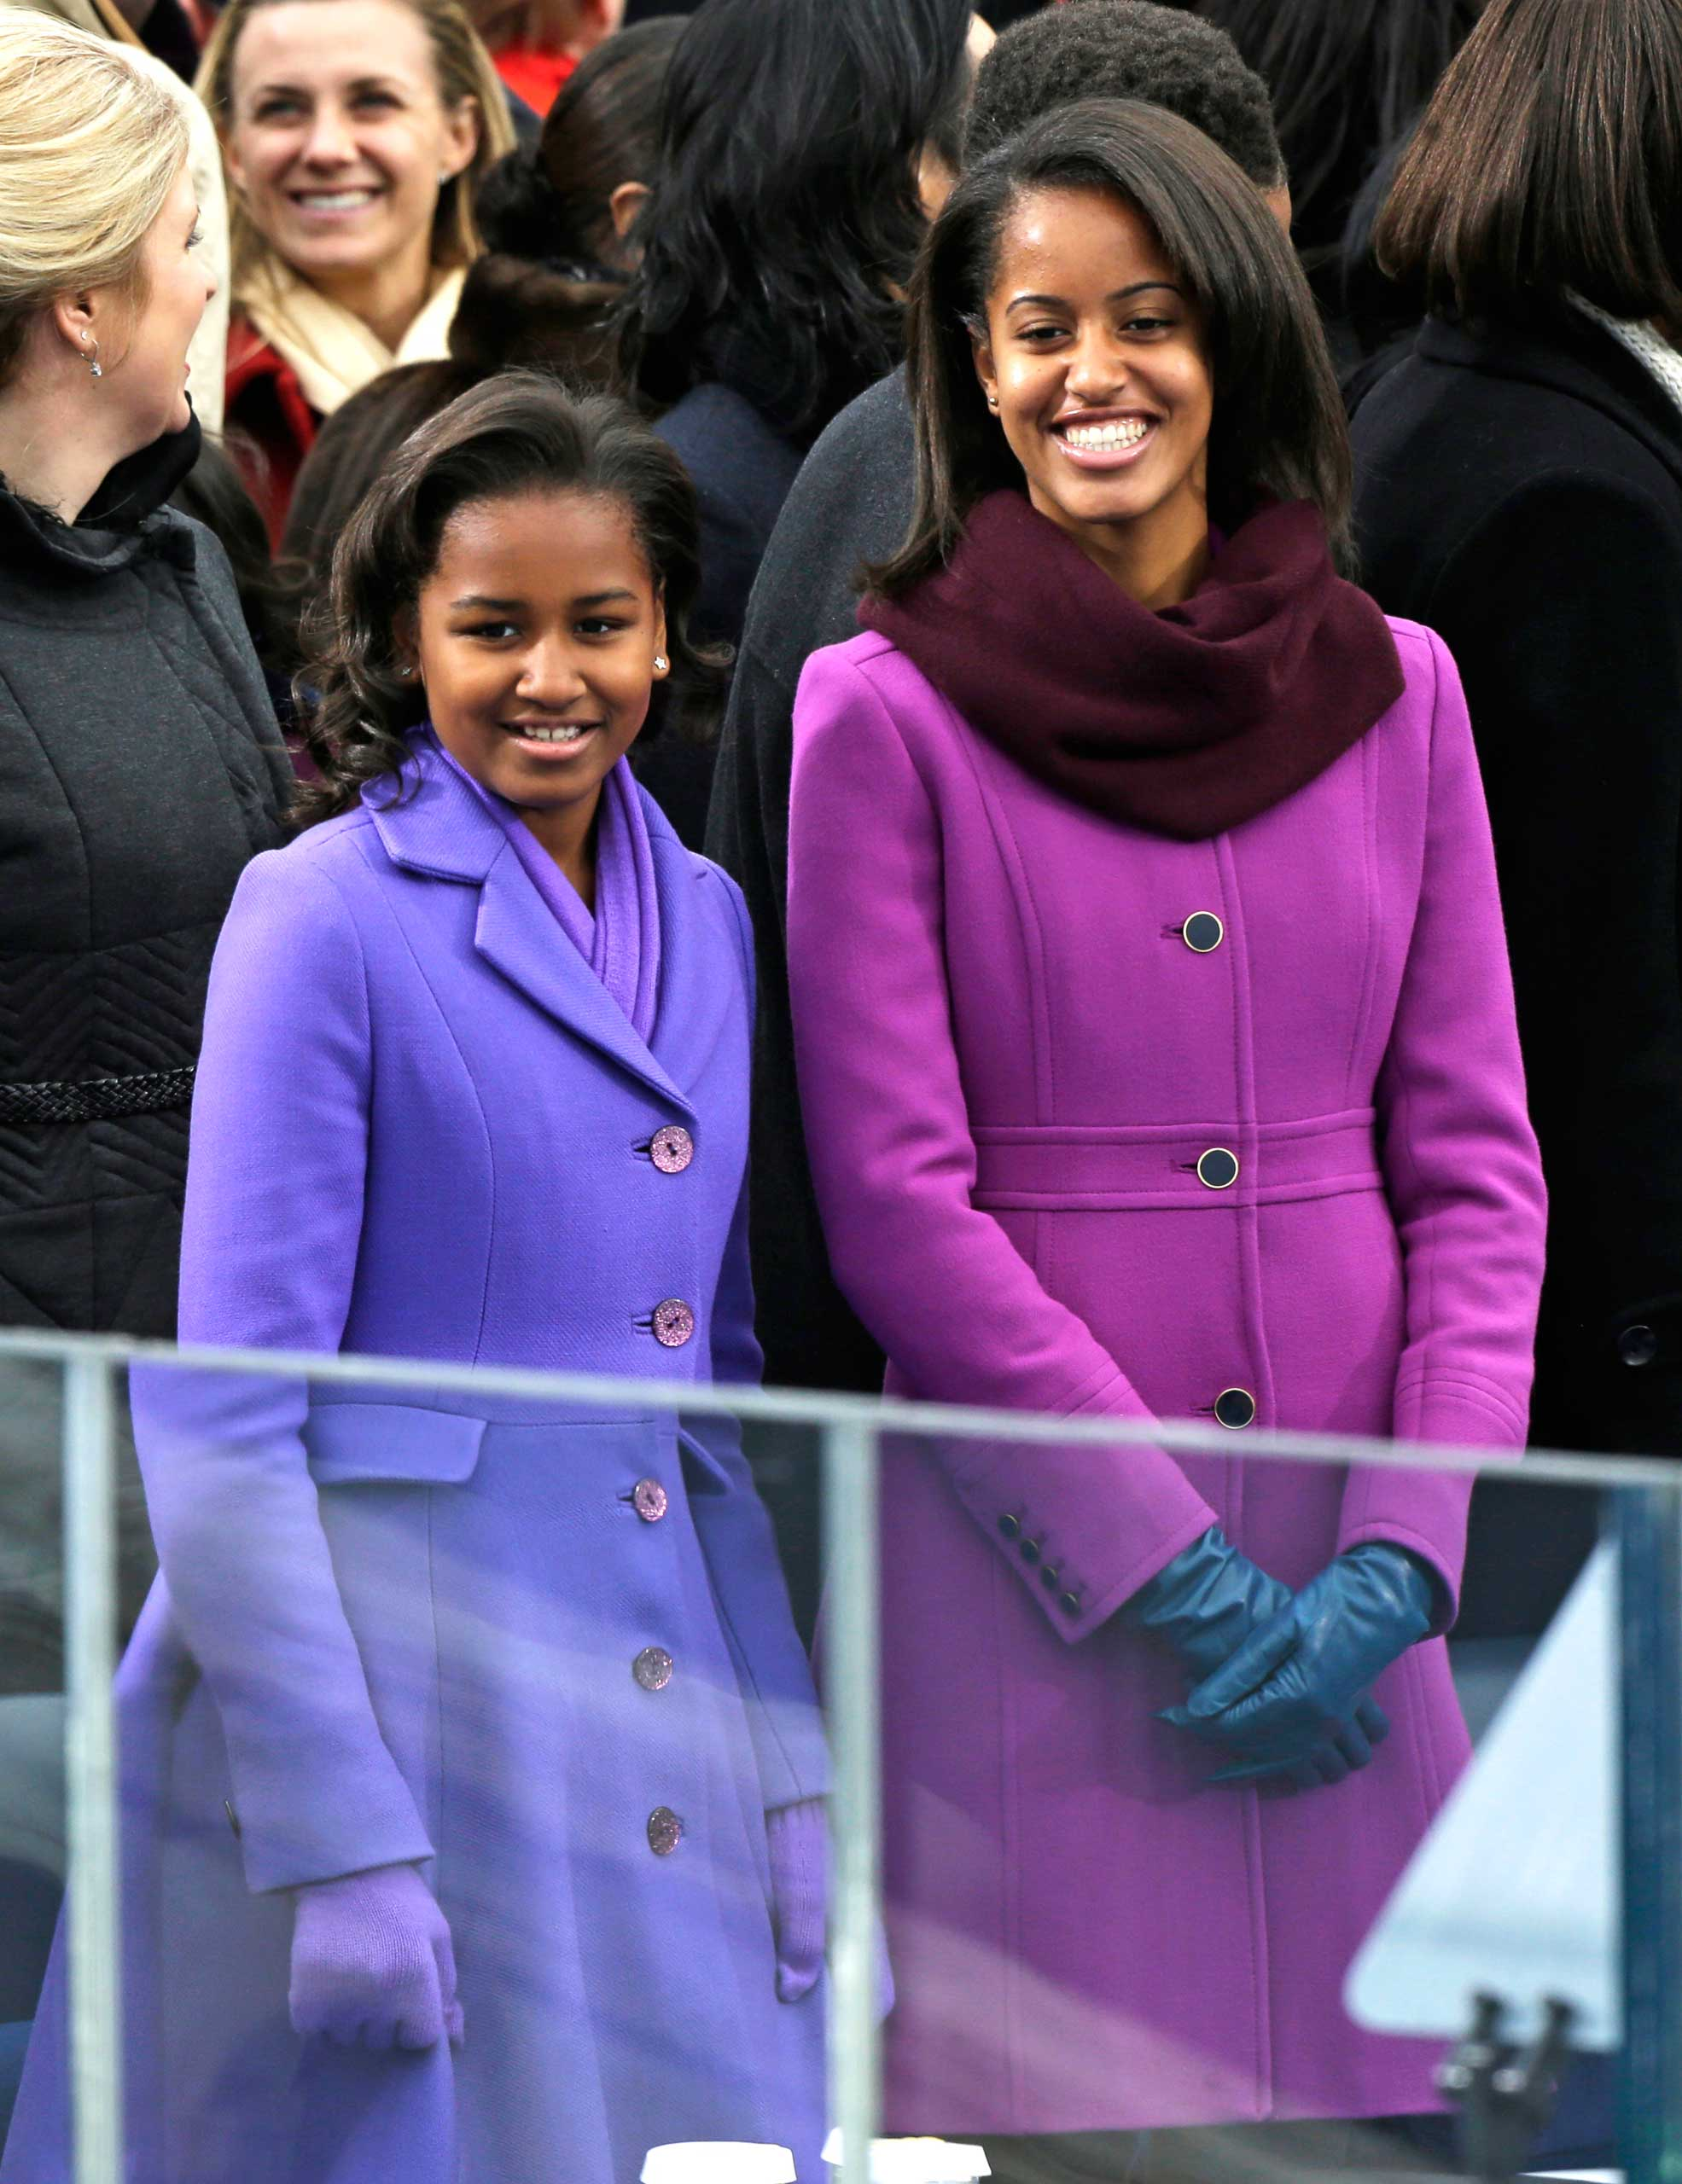 Sasha and Malia Obama arrive at the ceremonial swearing-in of their father President Barack Obama at the U.S. Capitol during the 57th Presidential Inauguration in Washington, Monday, Jan. 21, 2013. (AP Photo/Pablo Martinez Monsivais)